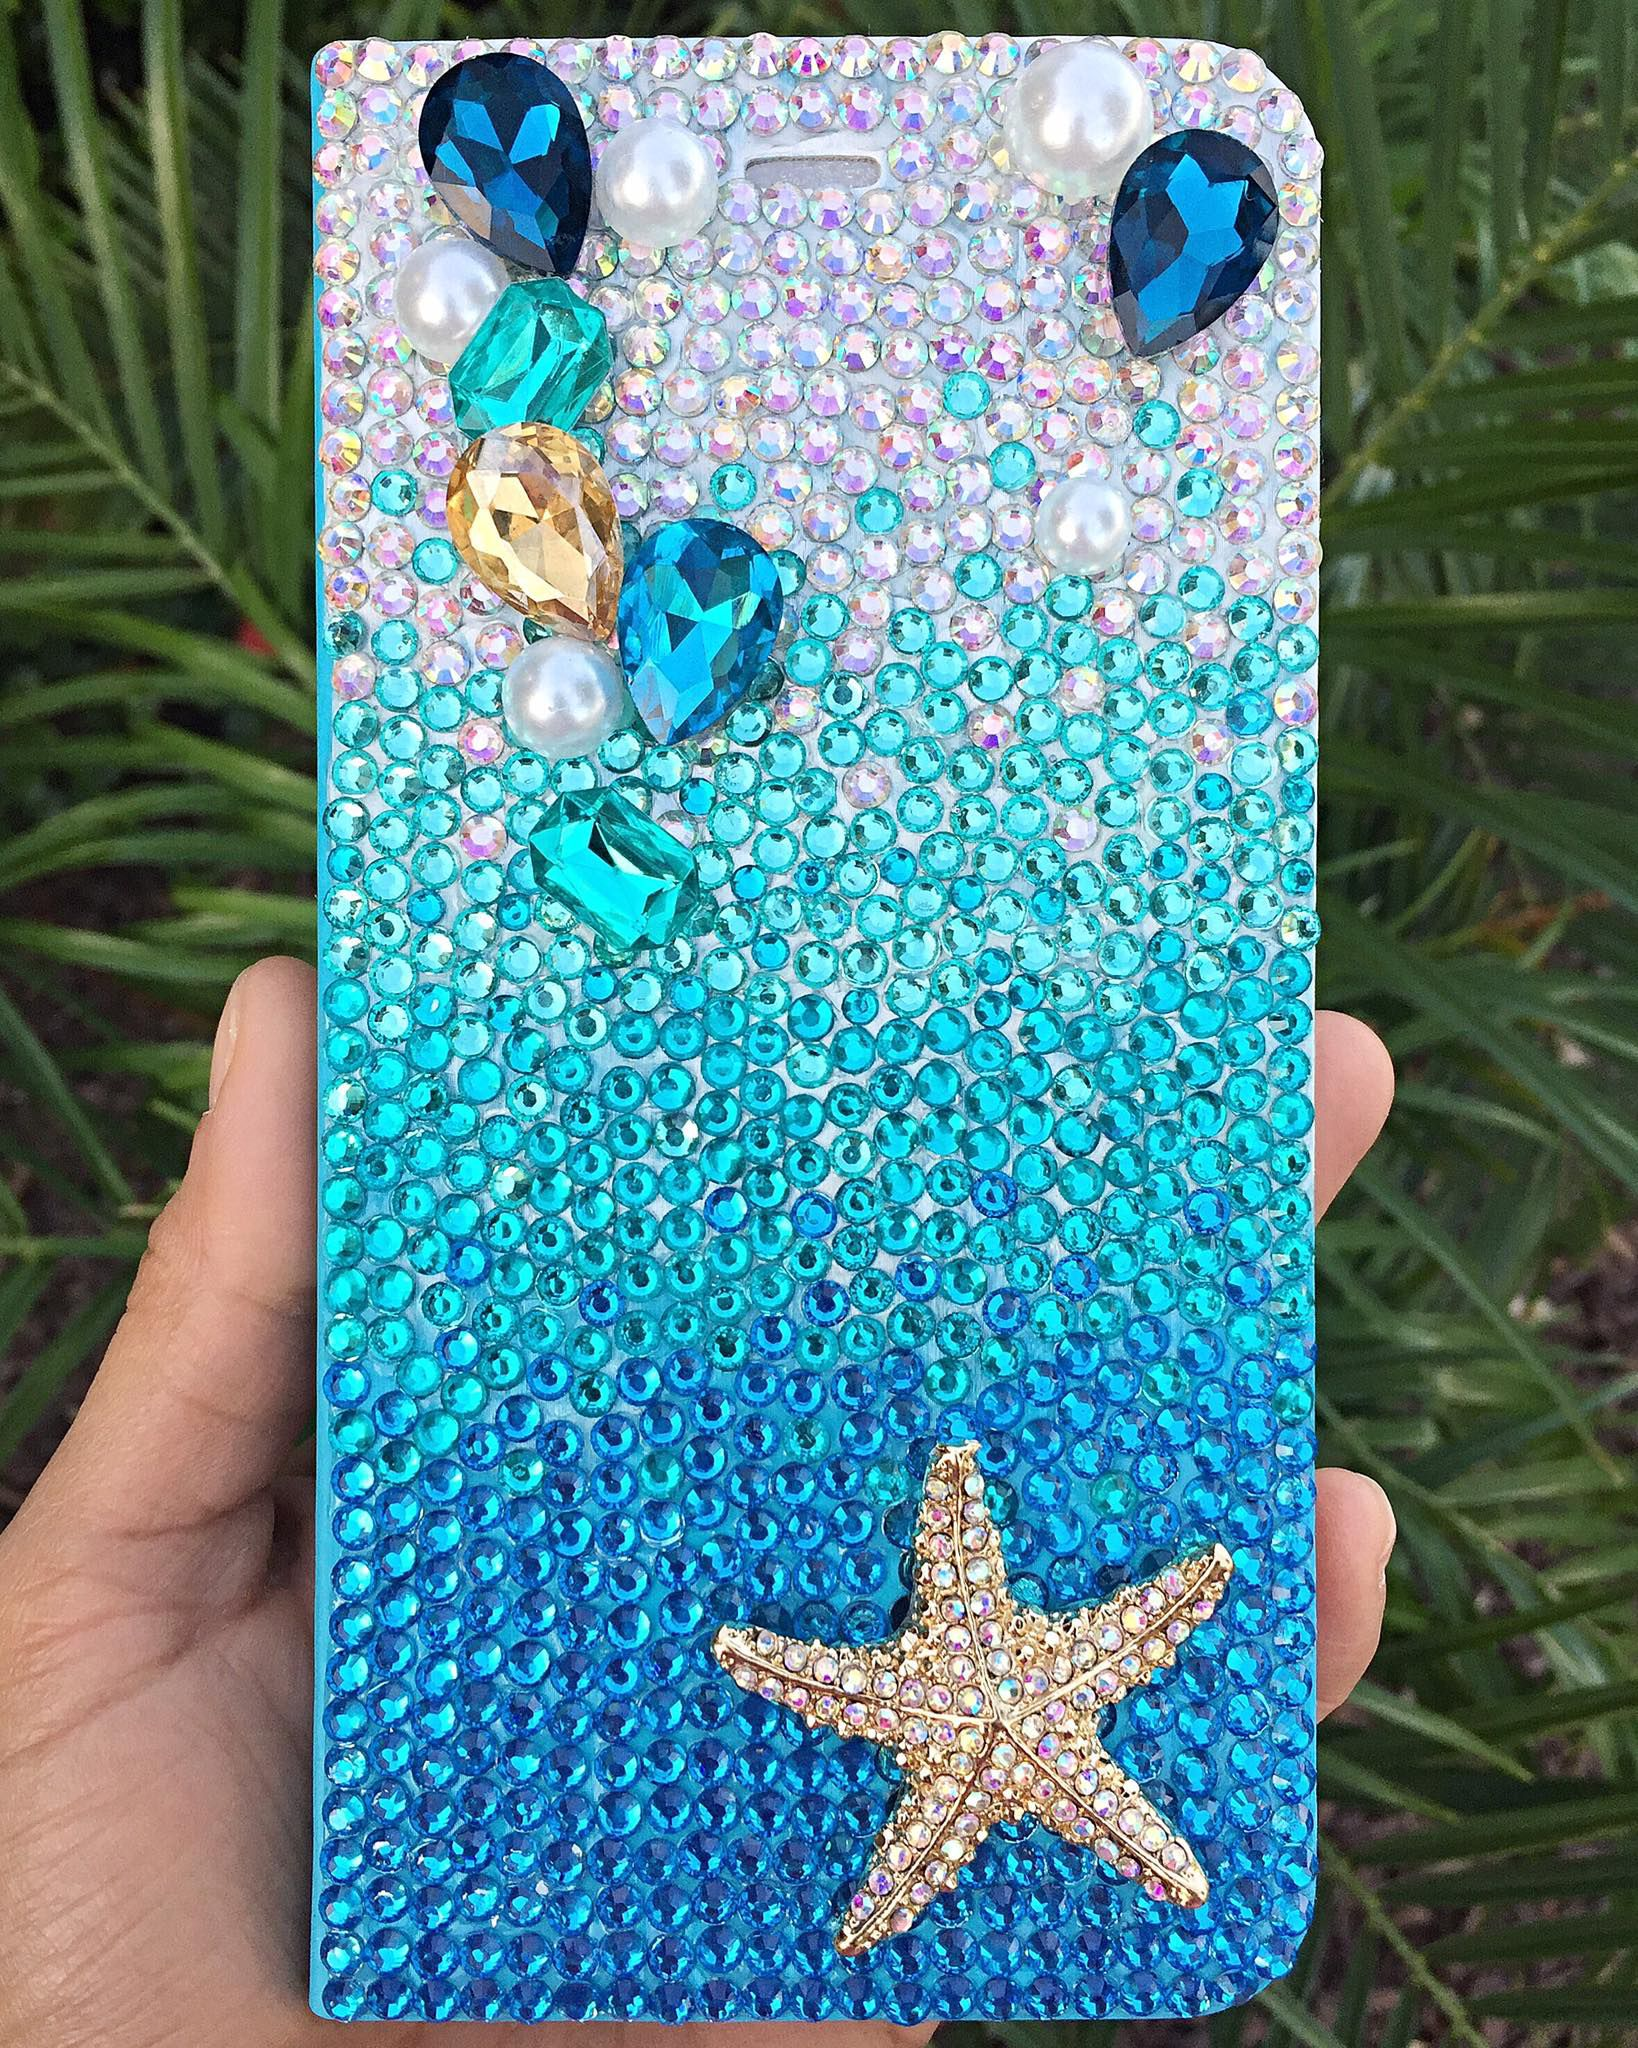 bling crystals aqua ombre case beach rhinestones phone mermaid starfish